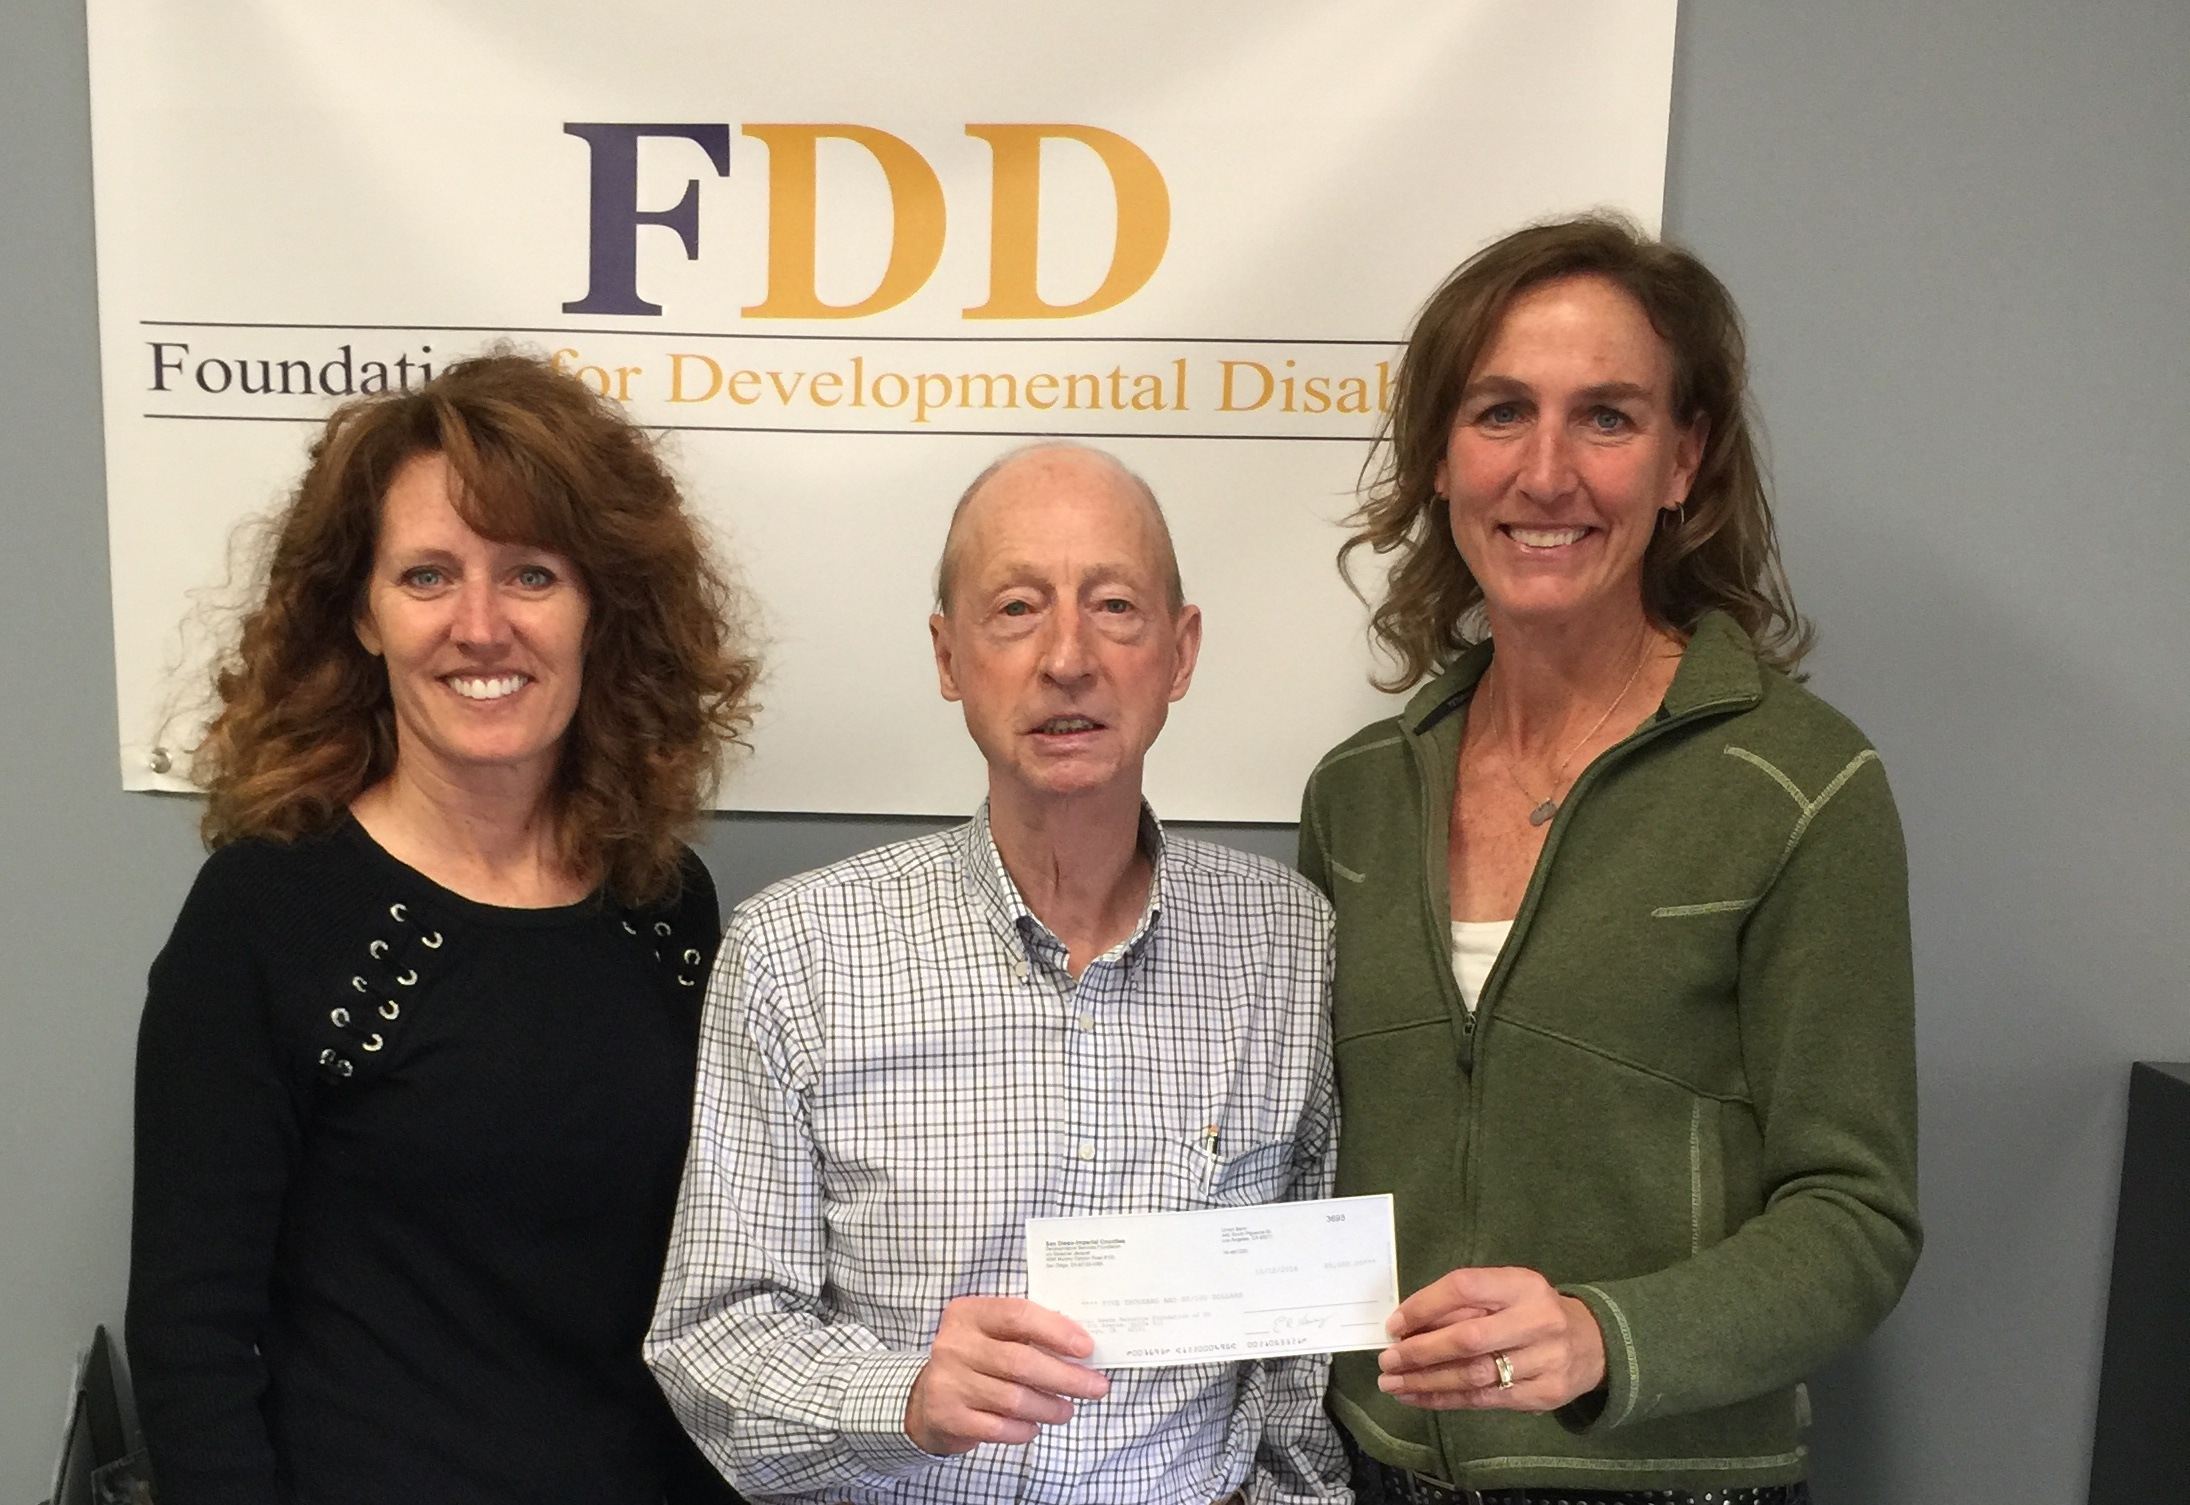 A Fantastic Grant from the Foundation for Developmental Disabilities